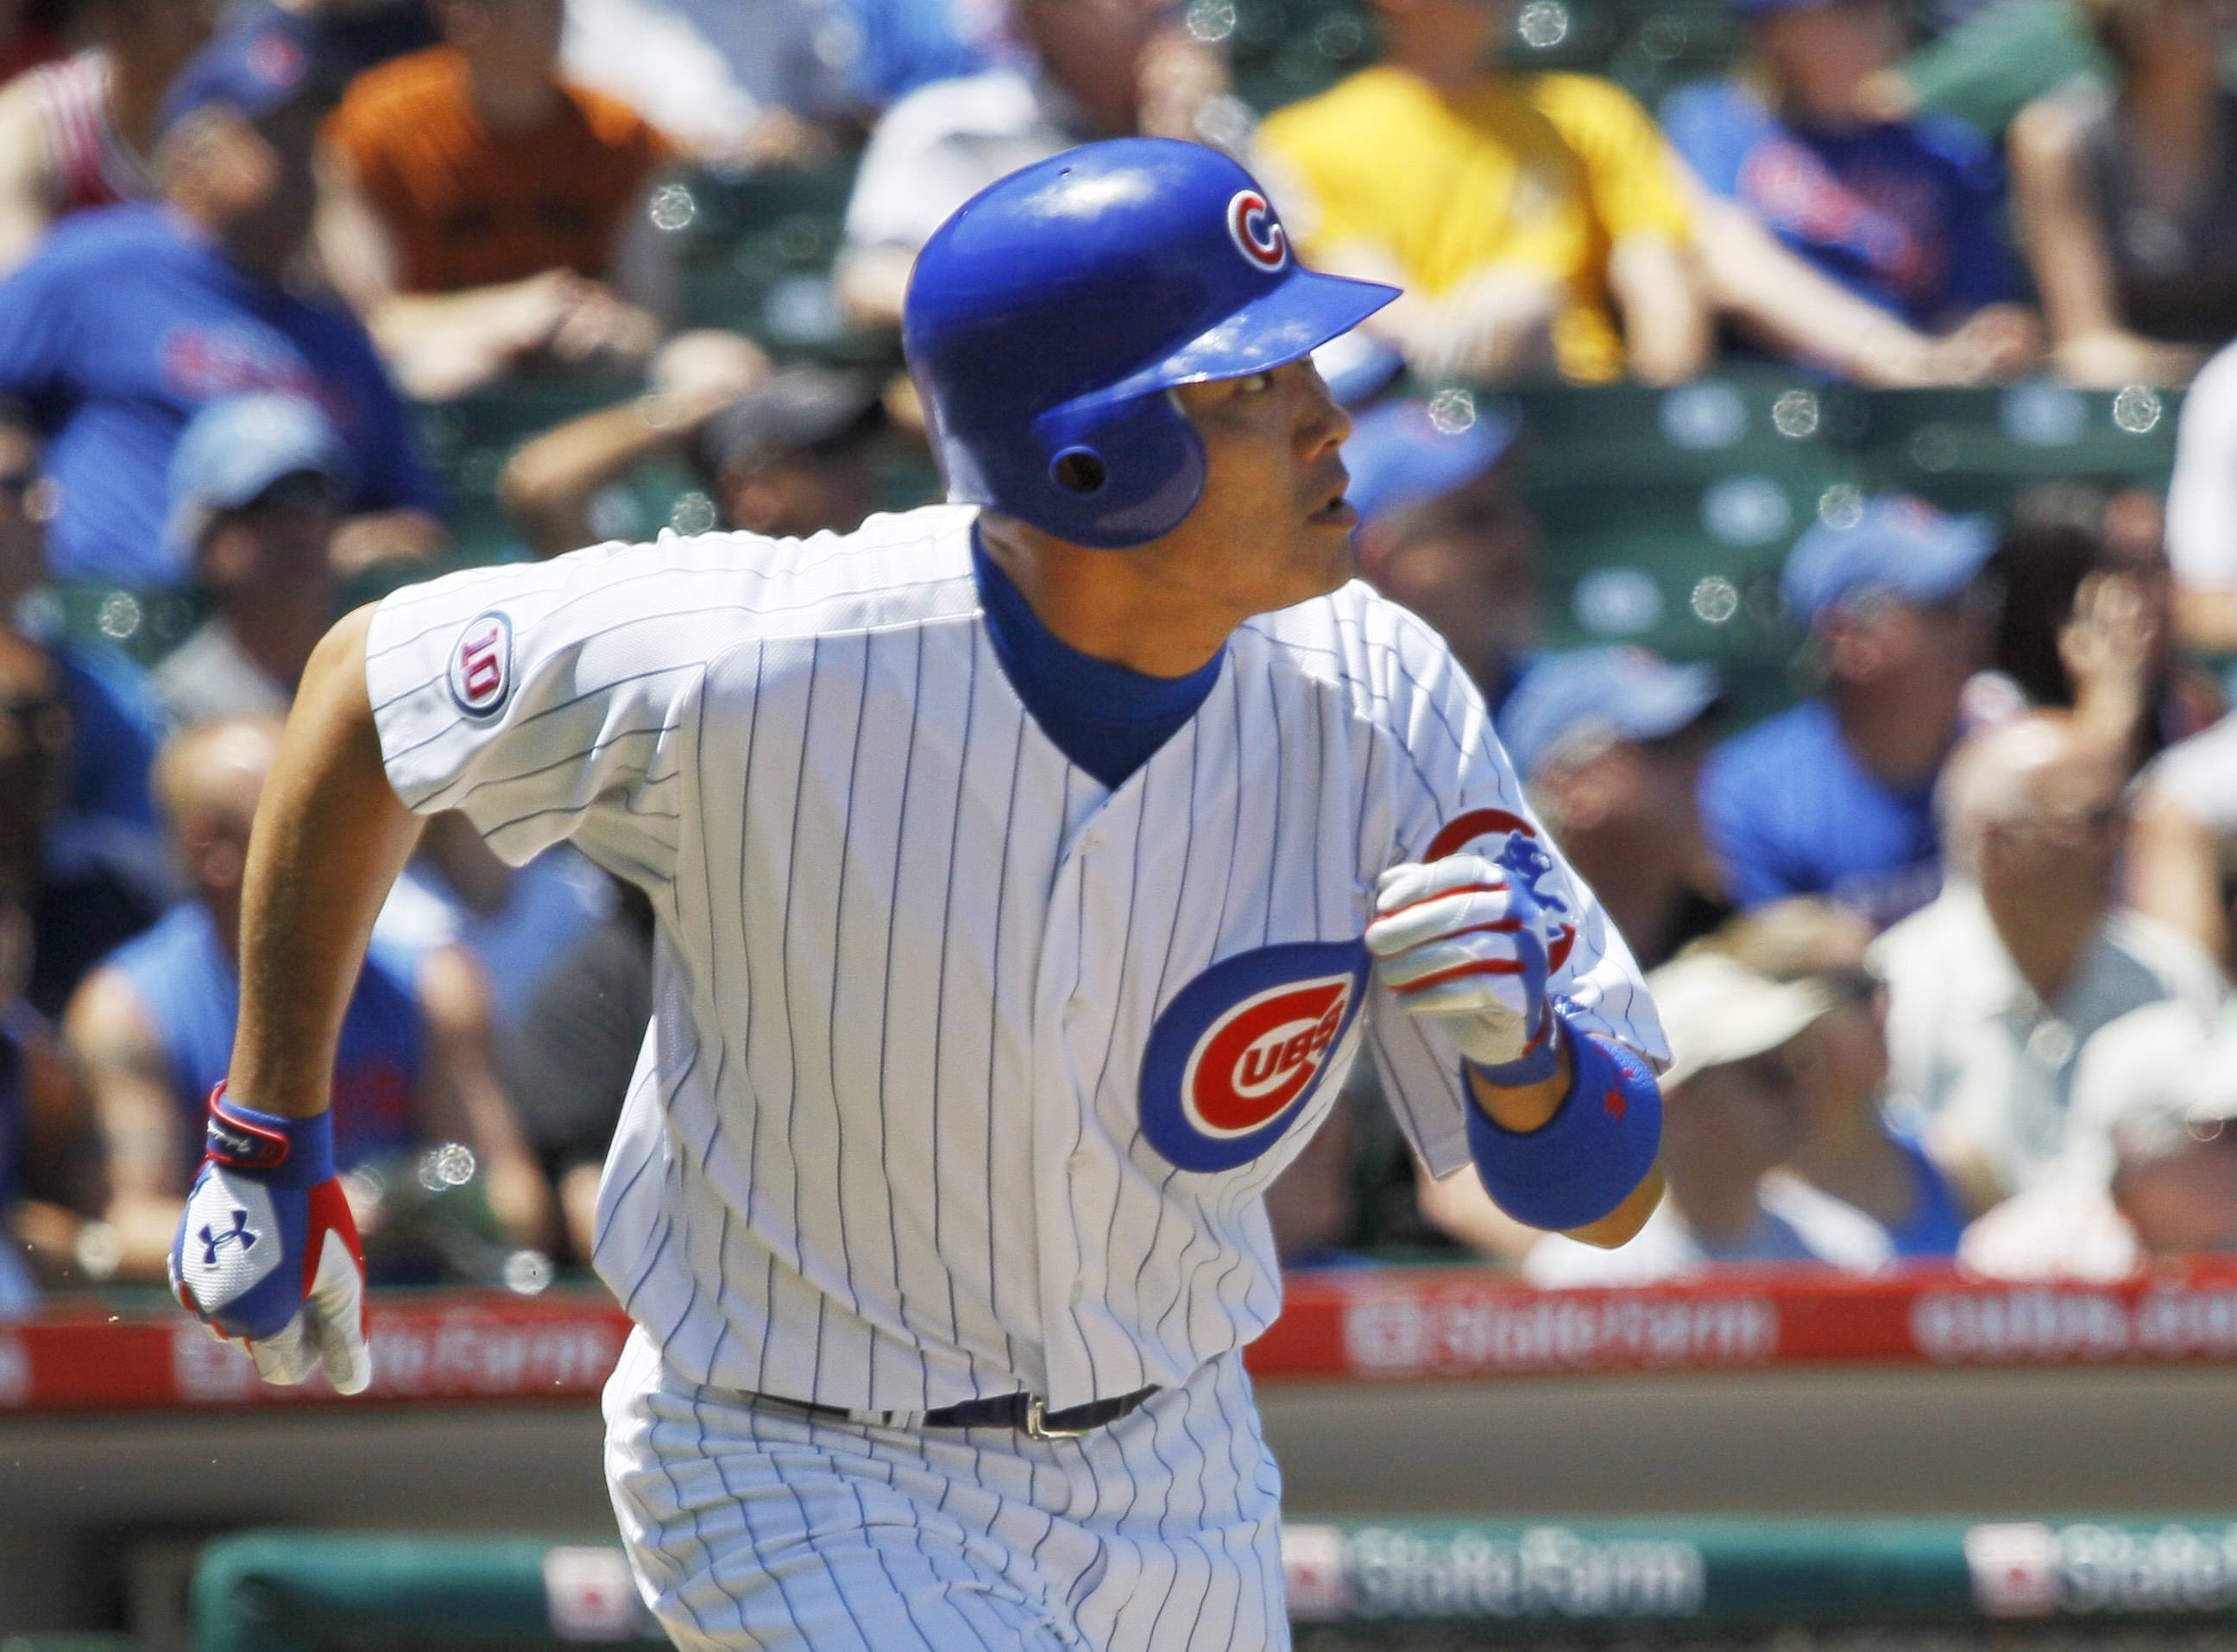 Cubs swept by Astros